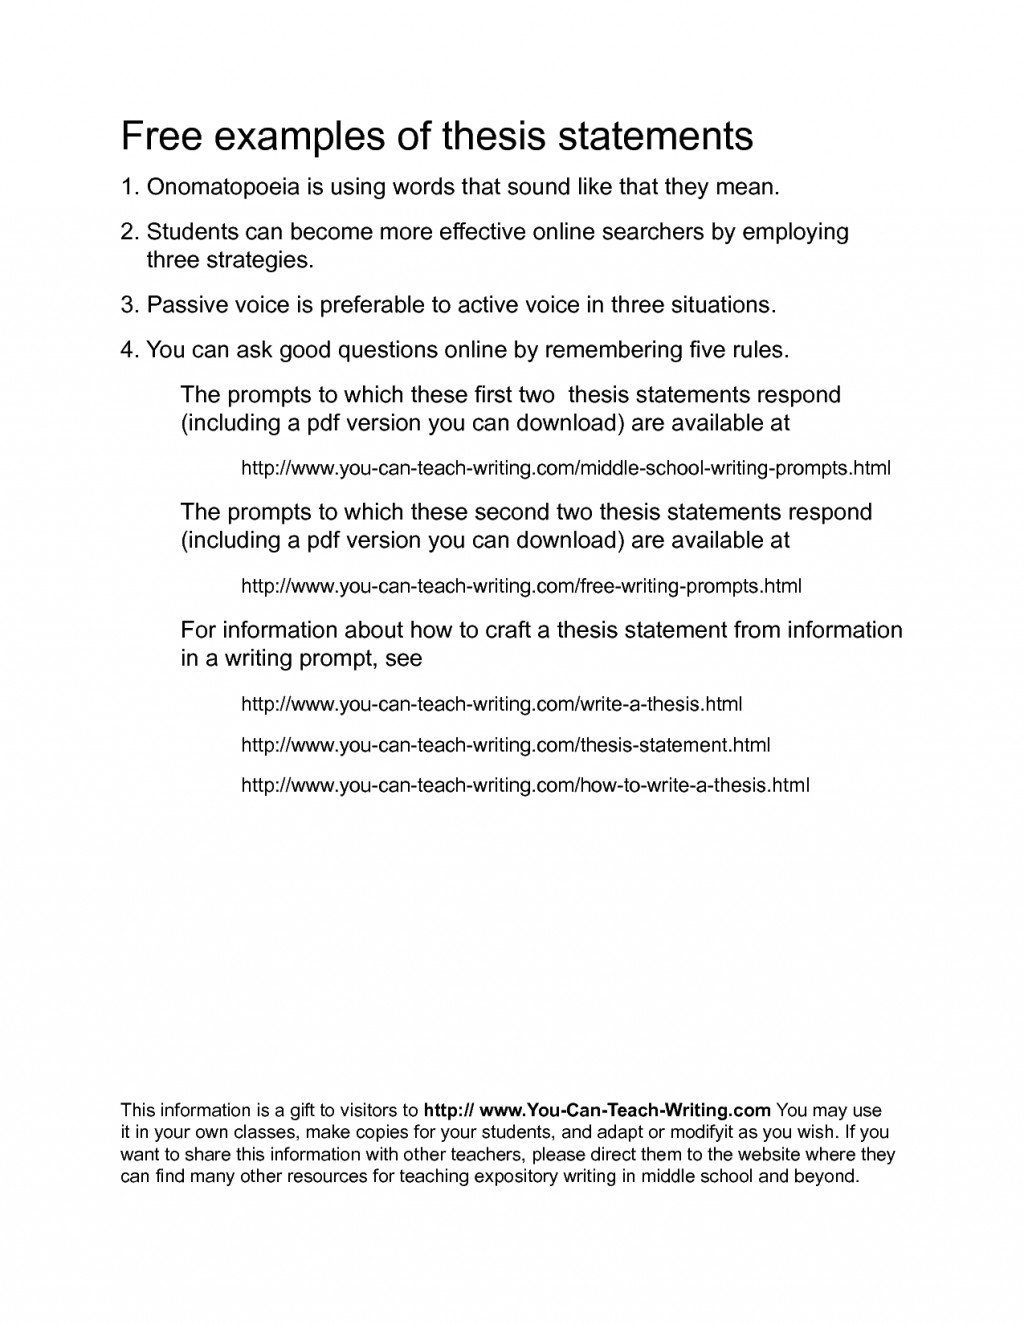 002 Childhood Obesity Research Paper Thesis Fantastic Statement Large